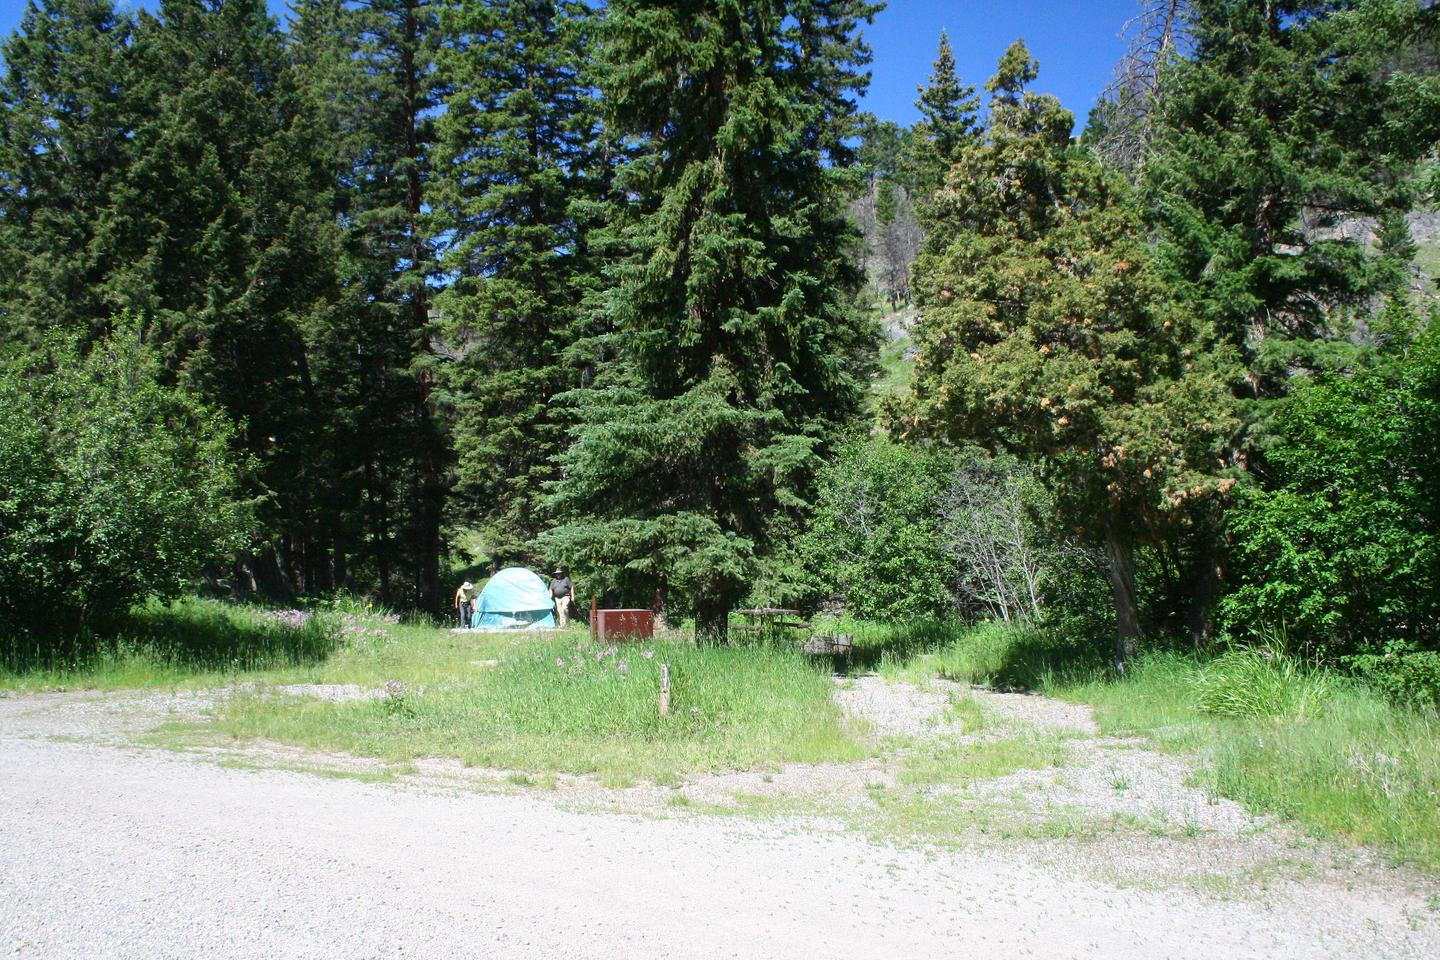 Slough Creek Campground site #11...Slough Creek Campground site #11